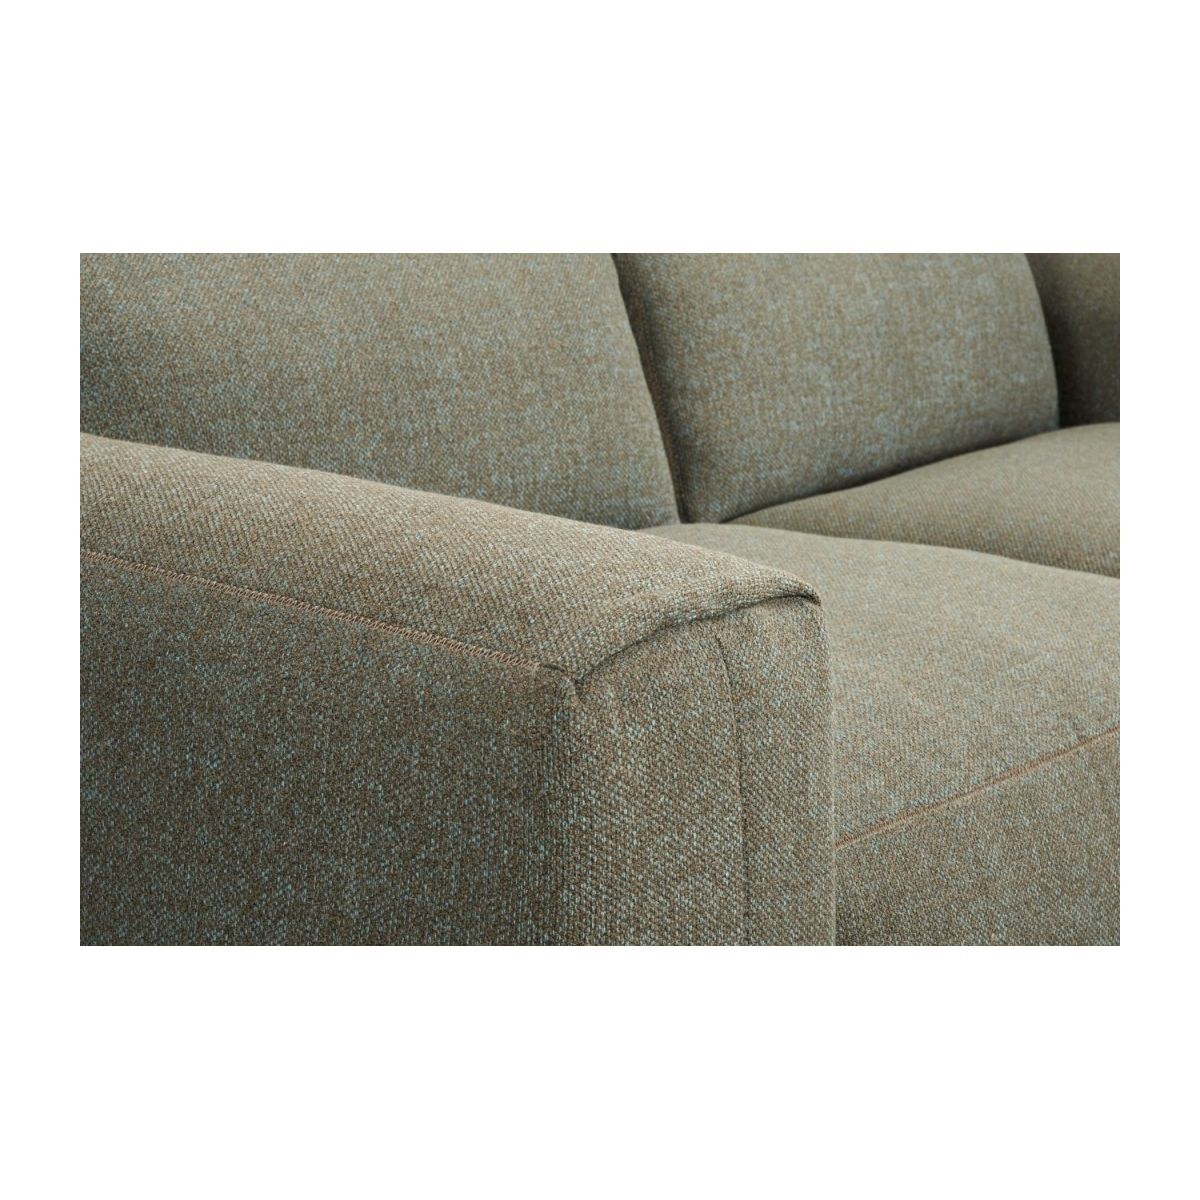 3 seater sofa in Lecce fabric, slade grey n°6